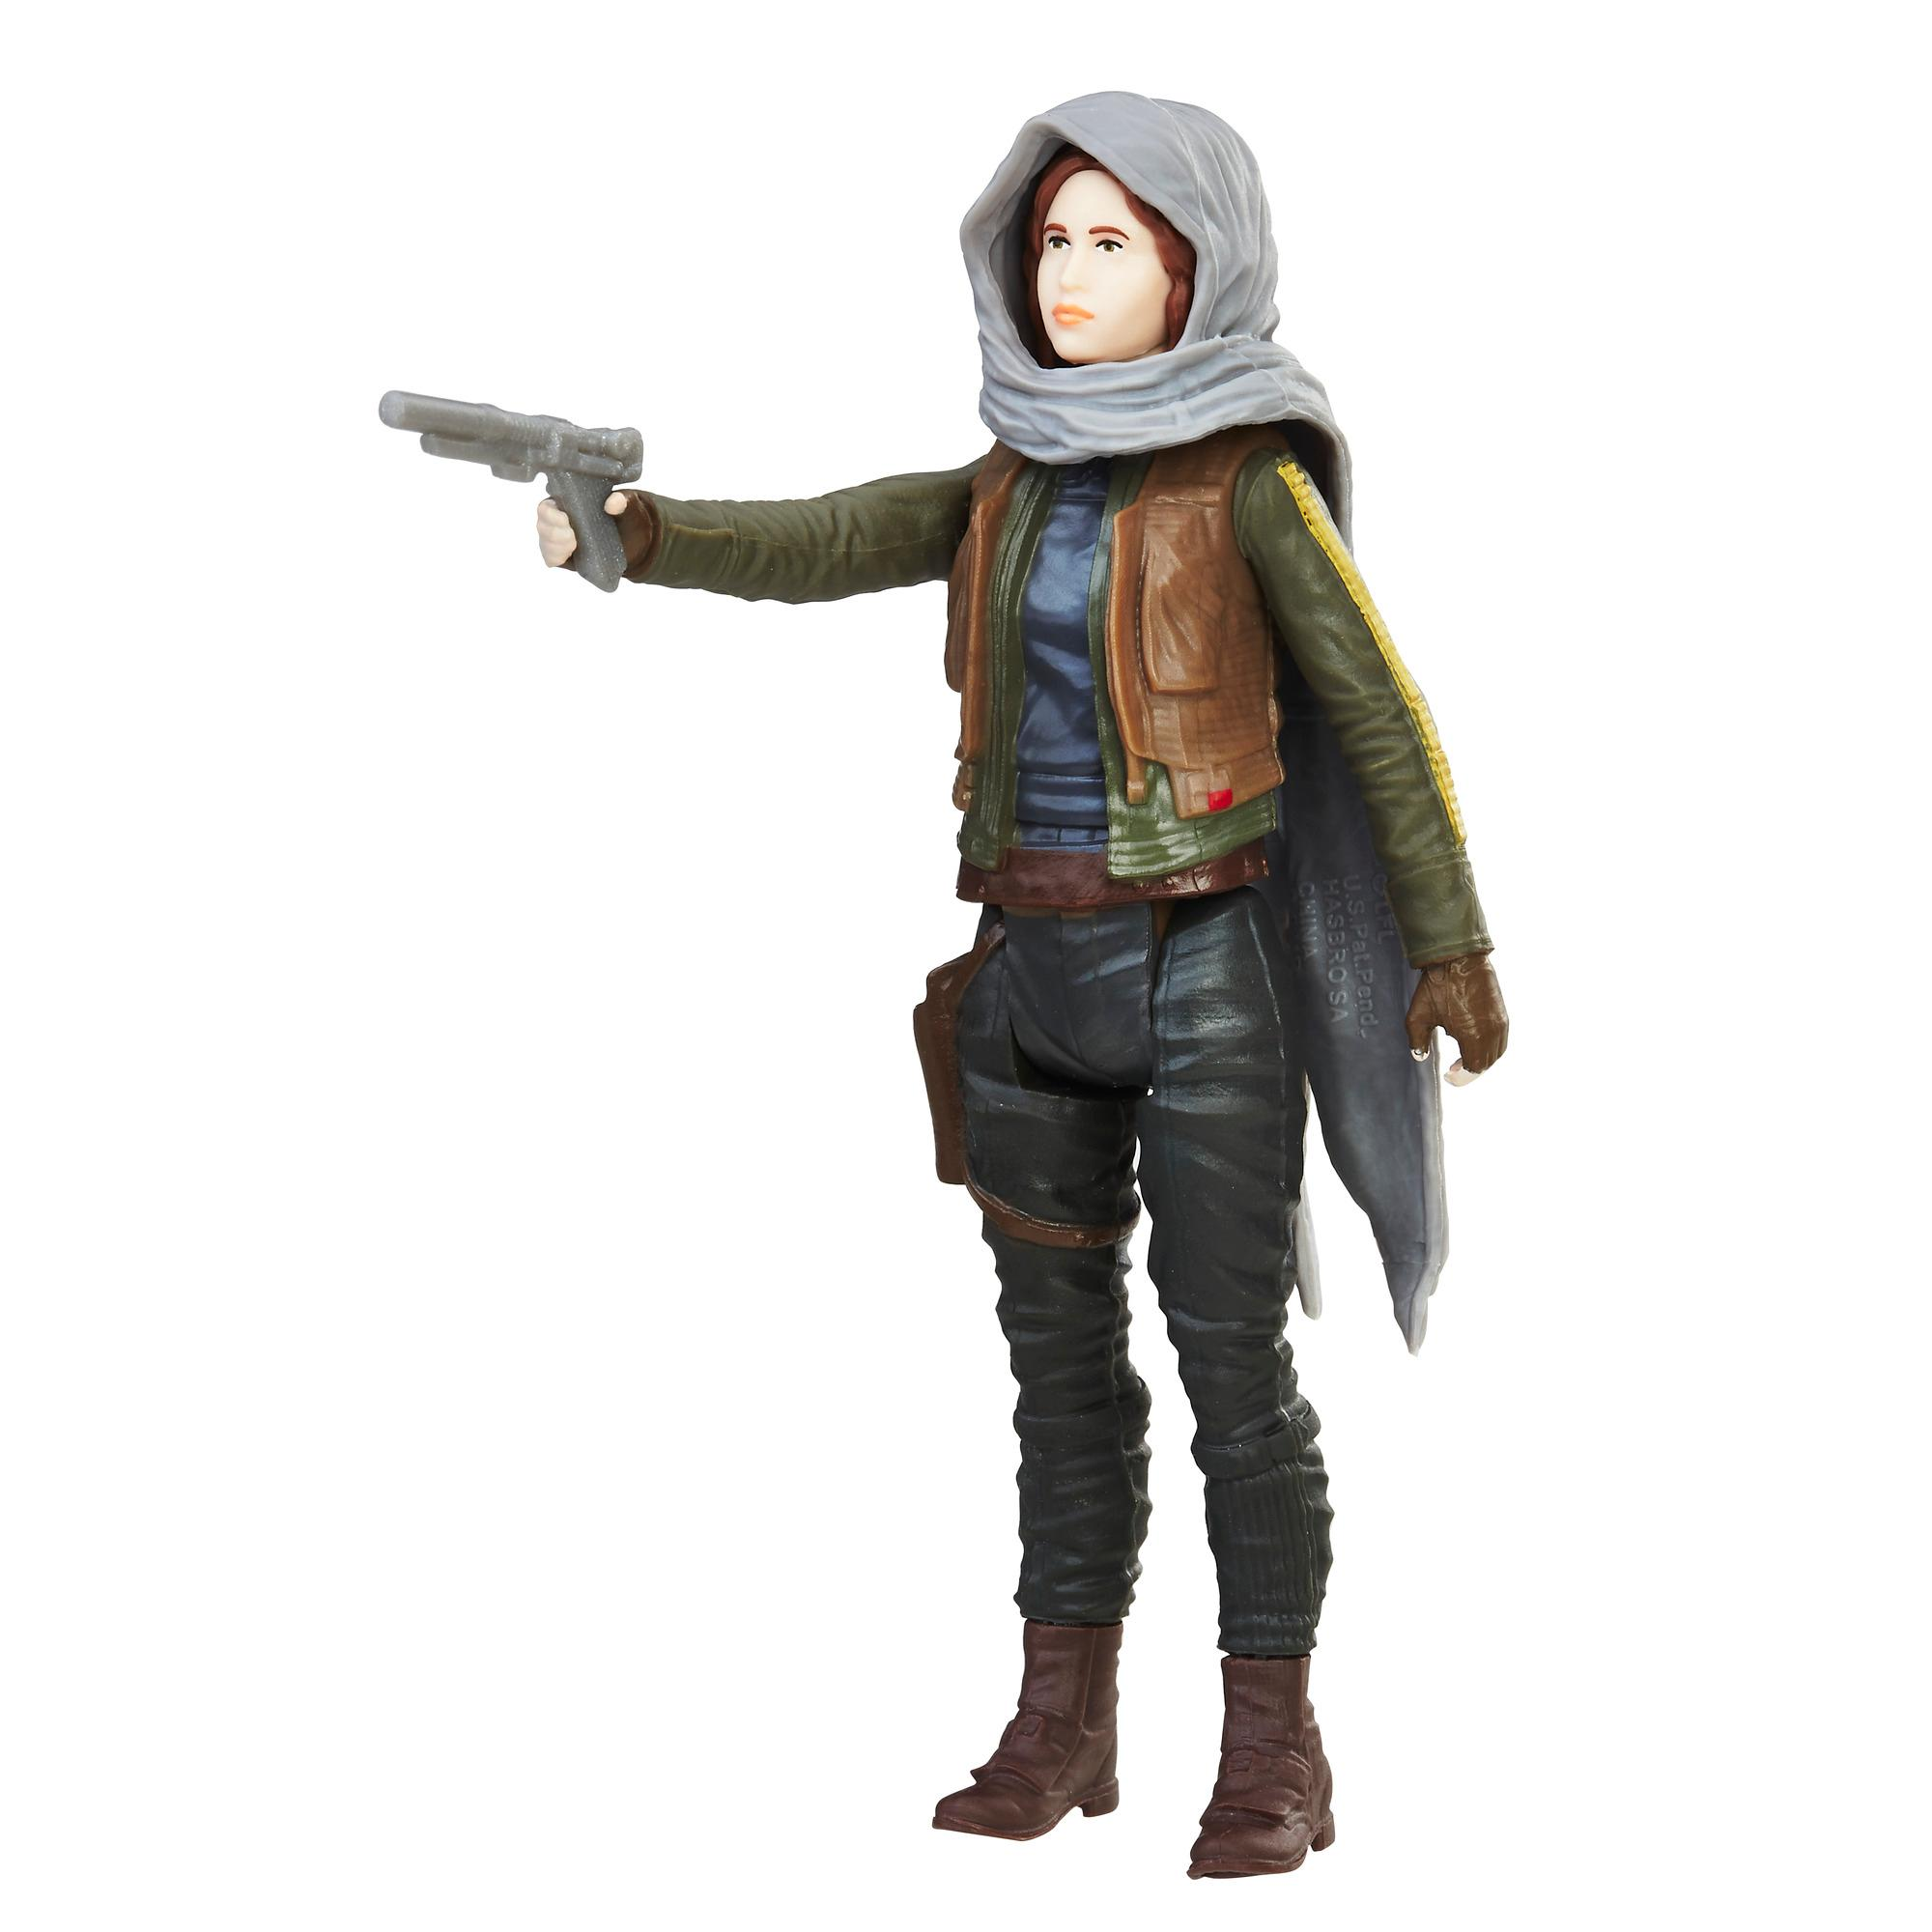 Star Wars - Figurine Jyn Erso (Jedha) avec Force Link